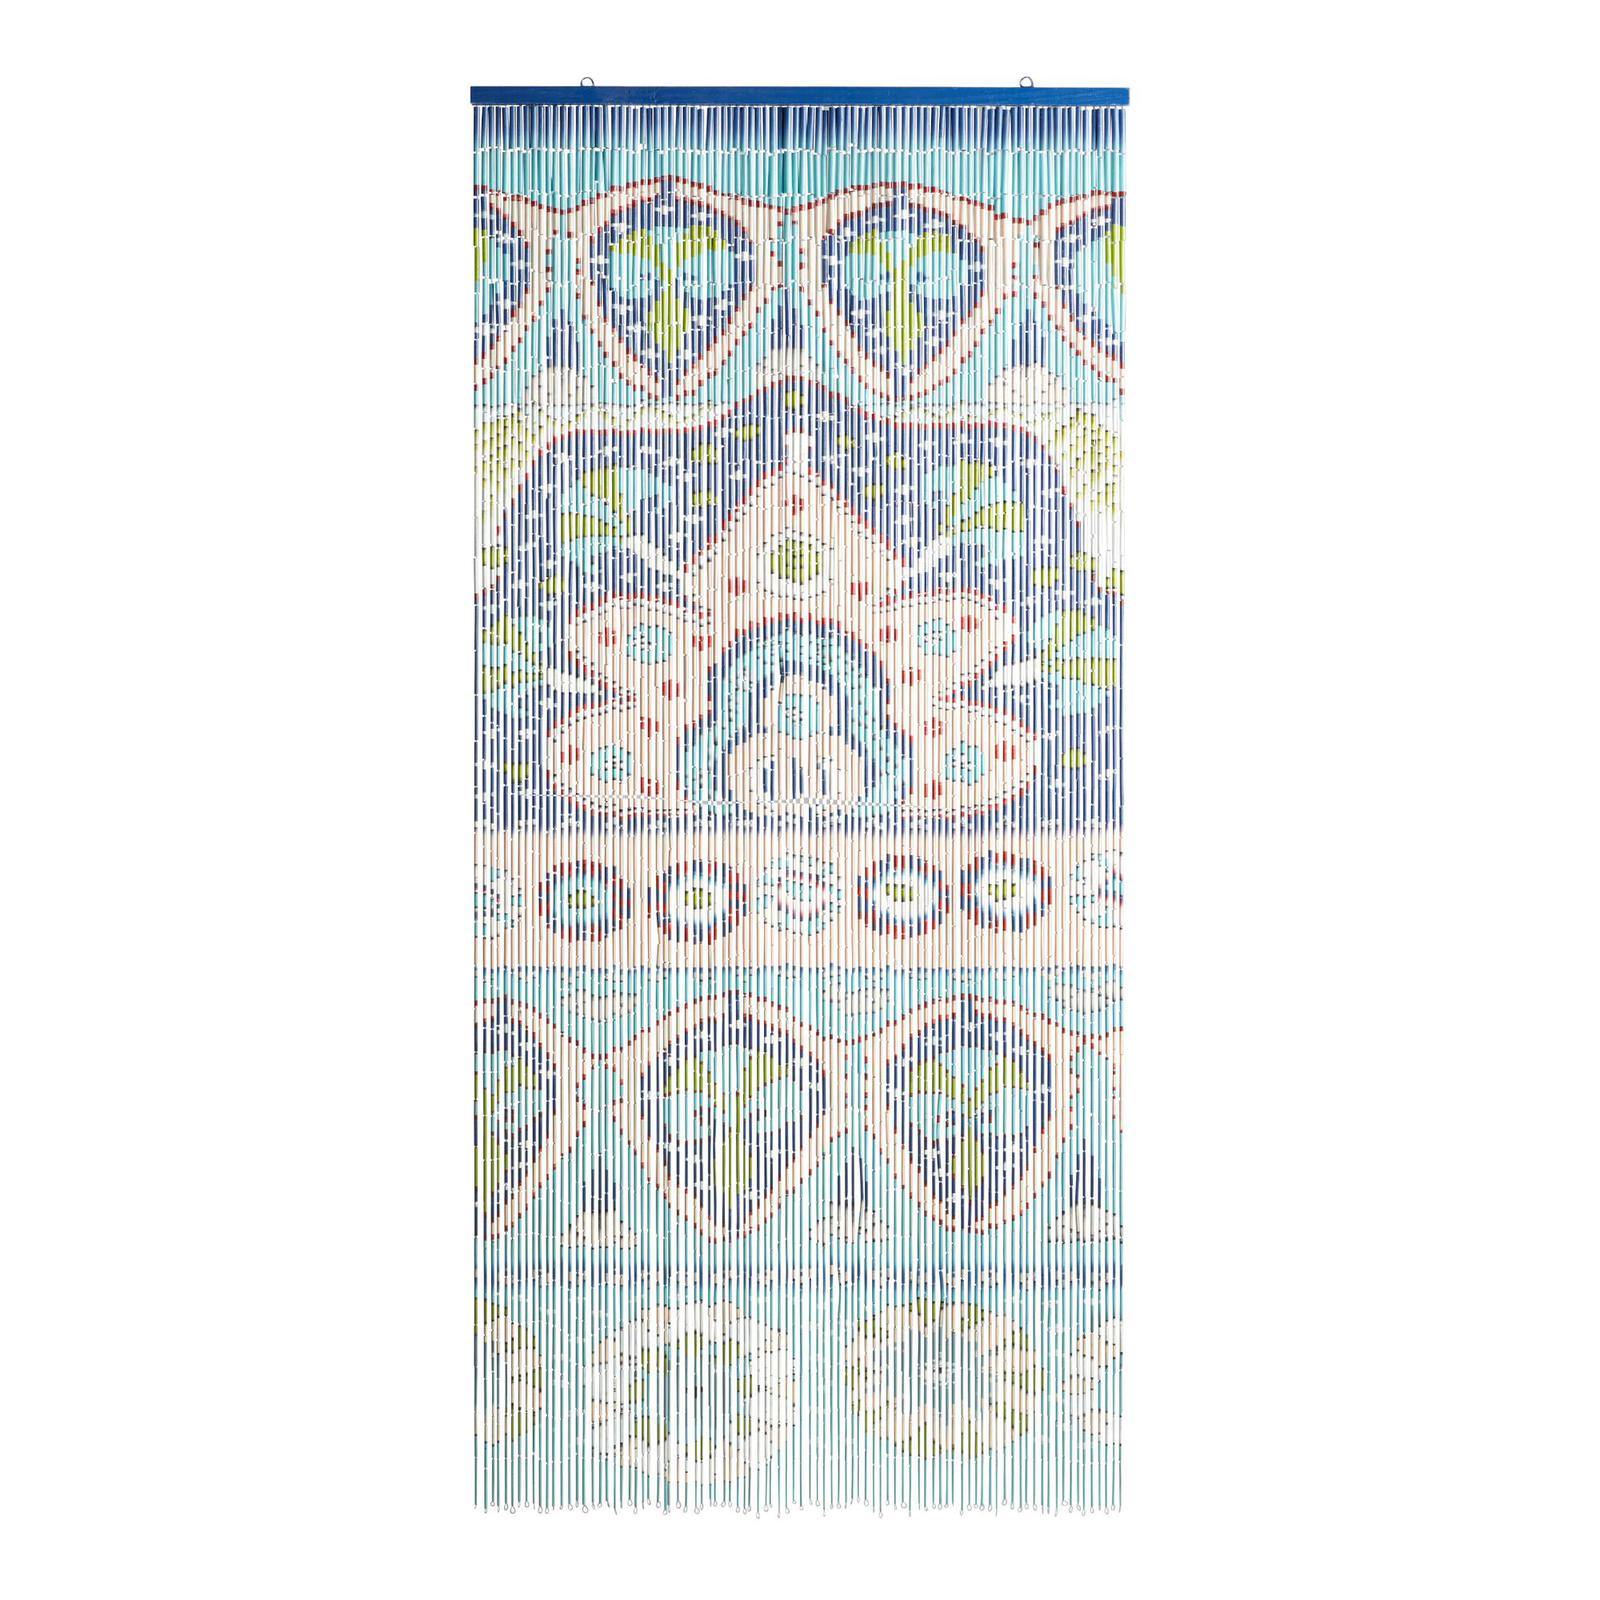 Make Your Doorframe Boho-Licious with Beads